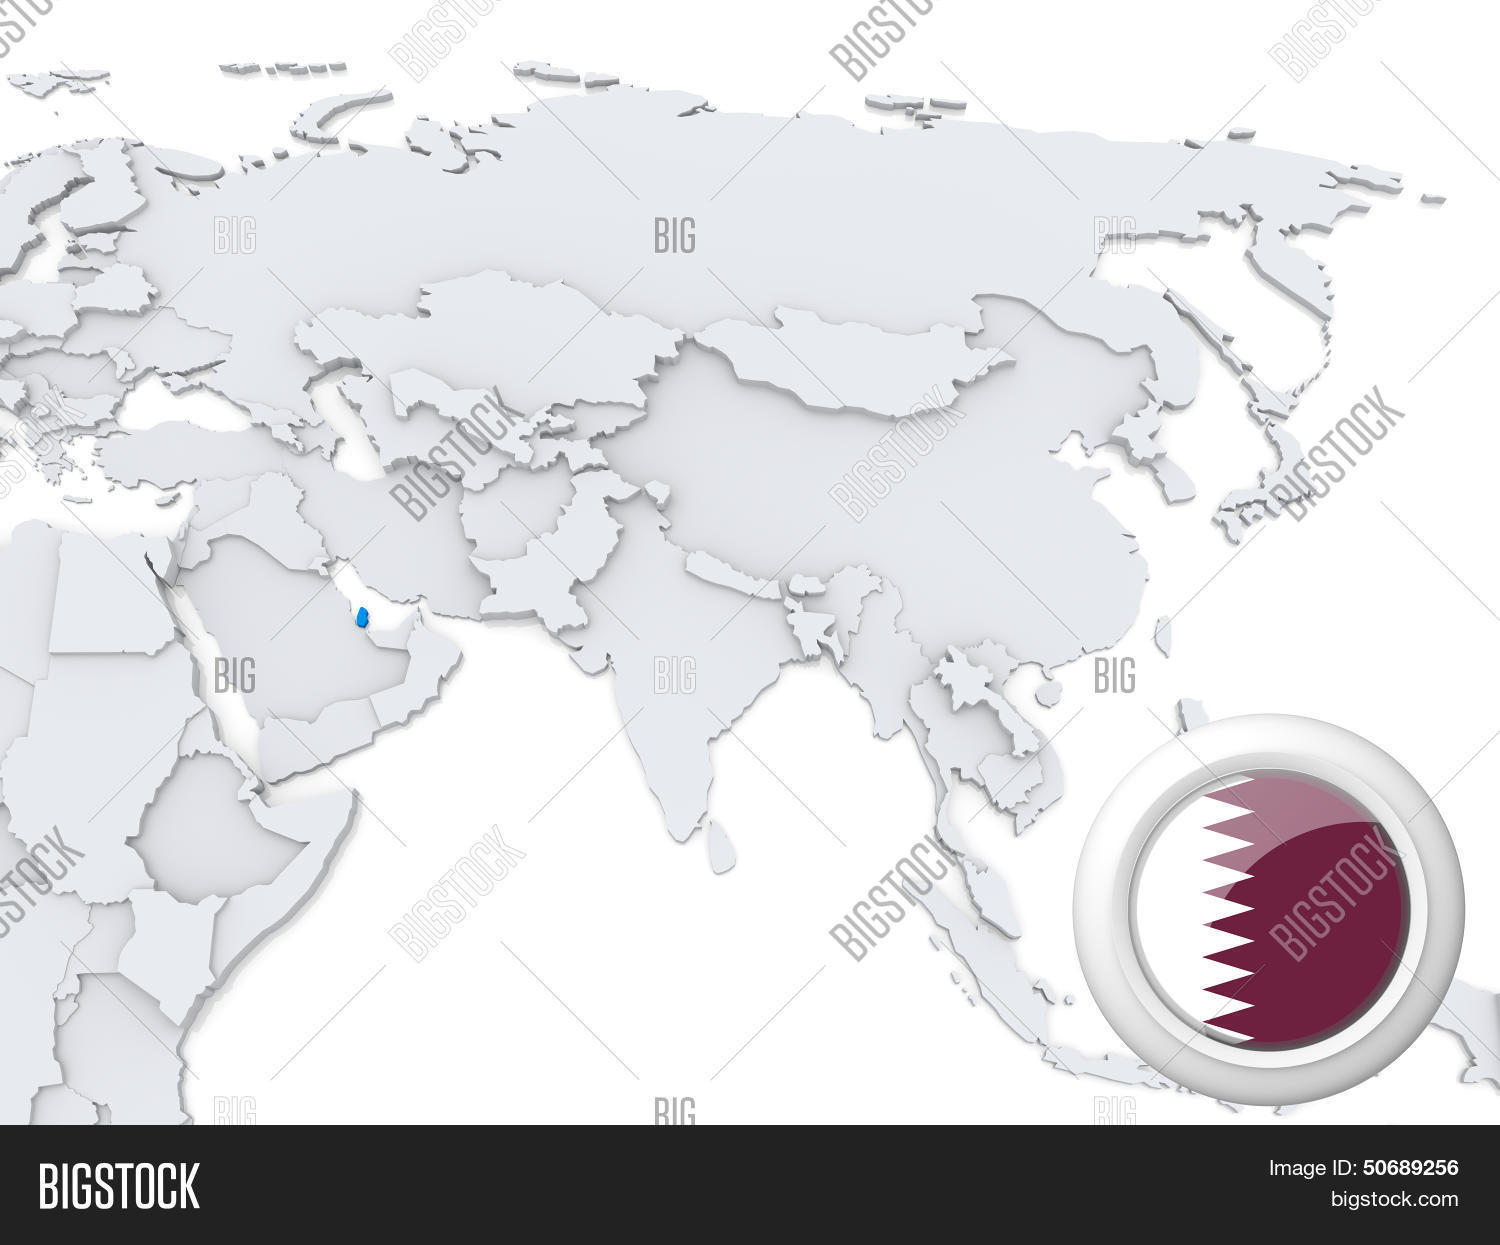 Map Of Asia Qatar.Qatar On Map Asia Image Photo Free Trial Bigstock